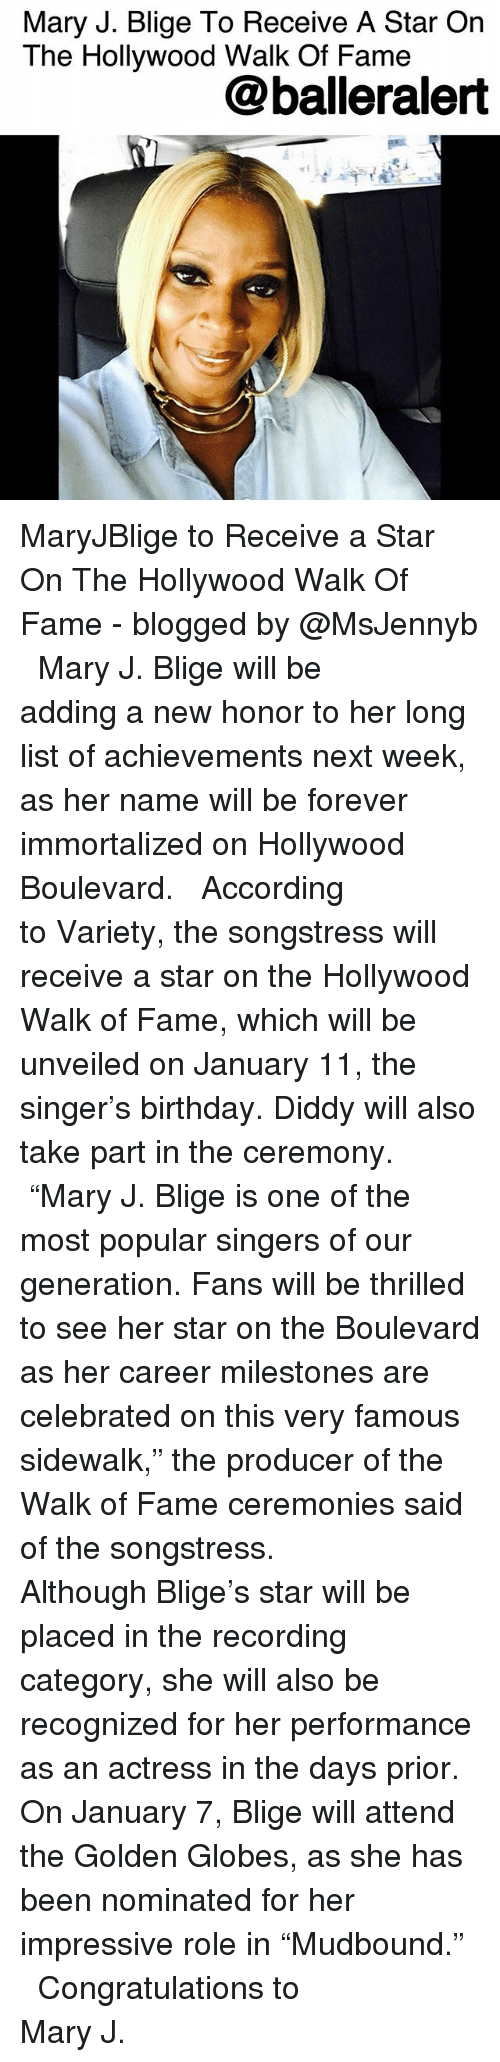 "Birthday, Golden Globes, and Memes: Mary J. Blige To Receive A Star On  The Hollywood Walk Of Famee  @balleralert MaryJBlige to Receive a Star On The Hollywood Walk Of Fame - blogged by @MsJennyb ⠀⠀⠀⠀⠀⠀⠀ ⠀⠀⠀⠀⠀⠀⠀ Mary J. Blige will be adding a new honor to her long list of achievements next week, as her name will be forever immortalized on Hollywood Boulevard. ⠀⠀⠀⠀⠀⠀⠀ ⠀⠀⠀⠀⠀⠀⠀ According to Variety, the songstress will receive a star on the Hollywood Walk of Fame, which will be unveiled on January 11, the singer's birthday. Diddy will also take part in the ceremony. ⠀⠀⠀⠀⠀⠀⠀ ⠀⠀⠀⠀⠀⠀⠀ ""Mary J. Blige is one of the most popular singers of our generation. Fans will be thrilled to see her star on the Boulevard as her career milestones are celebrated on this very famous sidewalk,"" the producer of the Walk of Fame ceremonies said of the songstress. ⠀⠀⠀⠀⠀⠀⠀ ⠀⠀⠀⠀⠀⠀⠀ Although Blige's star will be placed in the recording category, she will also be recognized for her performance as an actress in the days prior. On January 7, Blige will attend the Golden Globes, as she has been nominated for her impressive role in ""Mudbound."" ⠀⠀⠀⠀⠀⠀⠀ ⠀⠀⠀⠀⠀⠀⠀ Congratulations to Mary J."